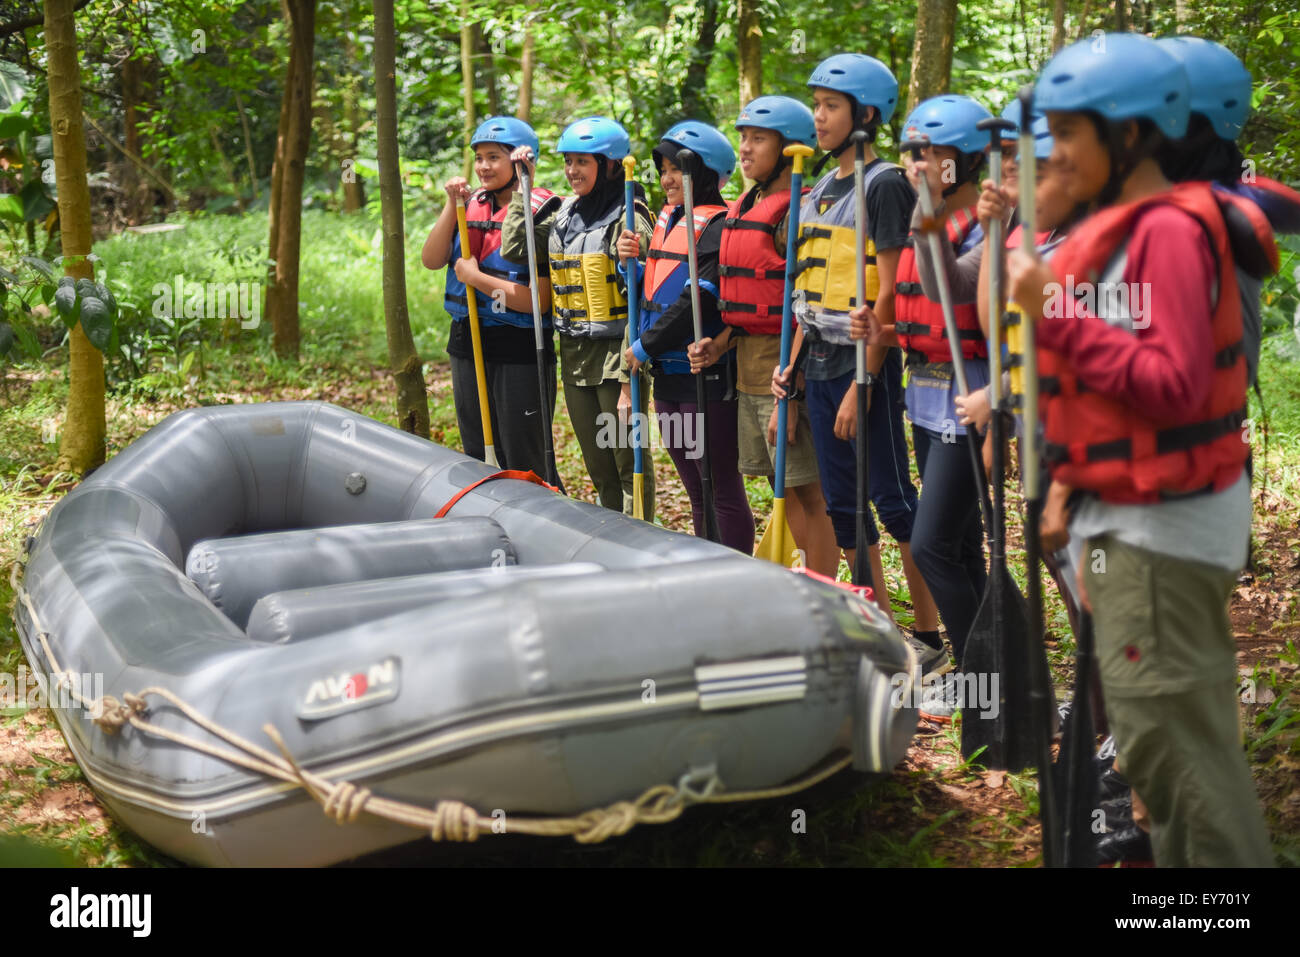 Teenagers prepare for white water rafting training. - Stock Image